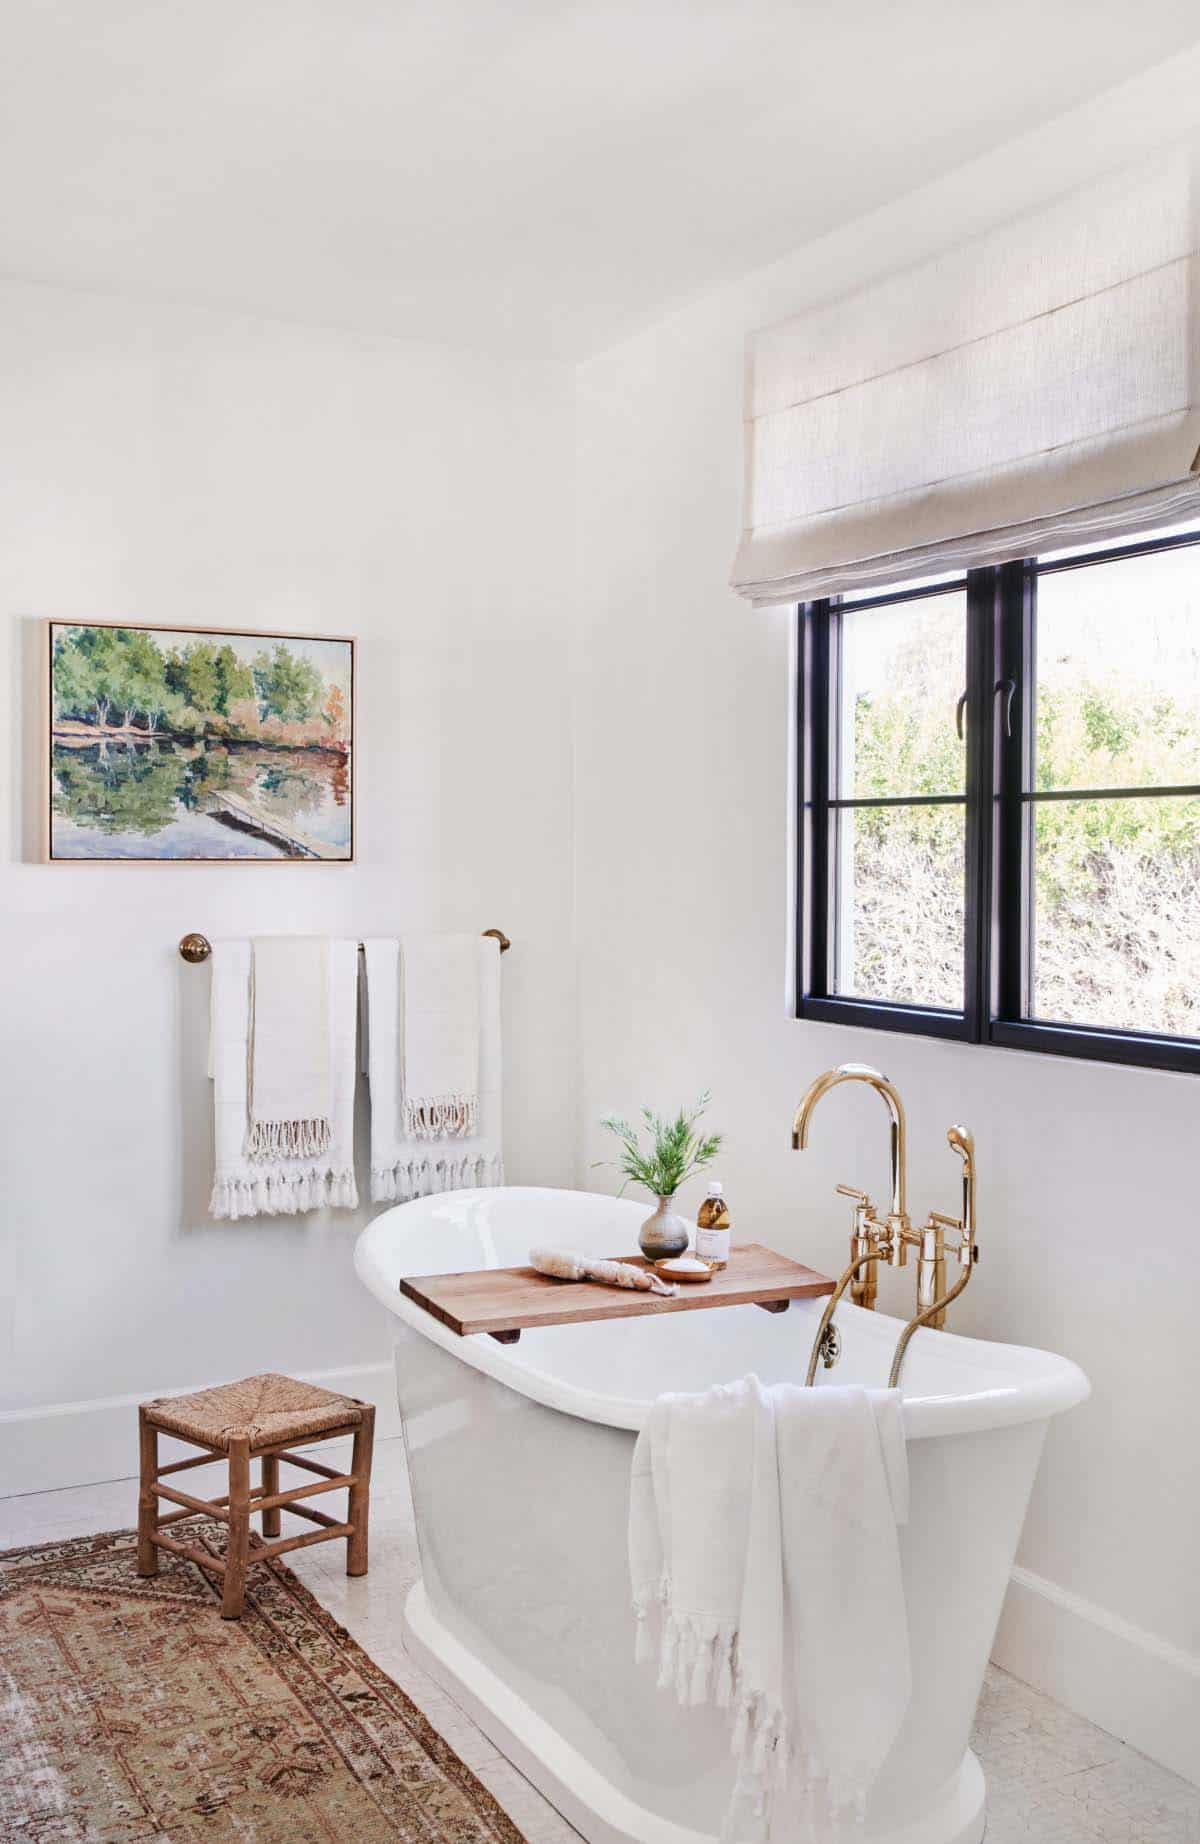 spanish-revival-bathroom-tub